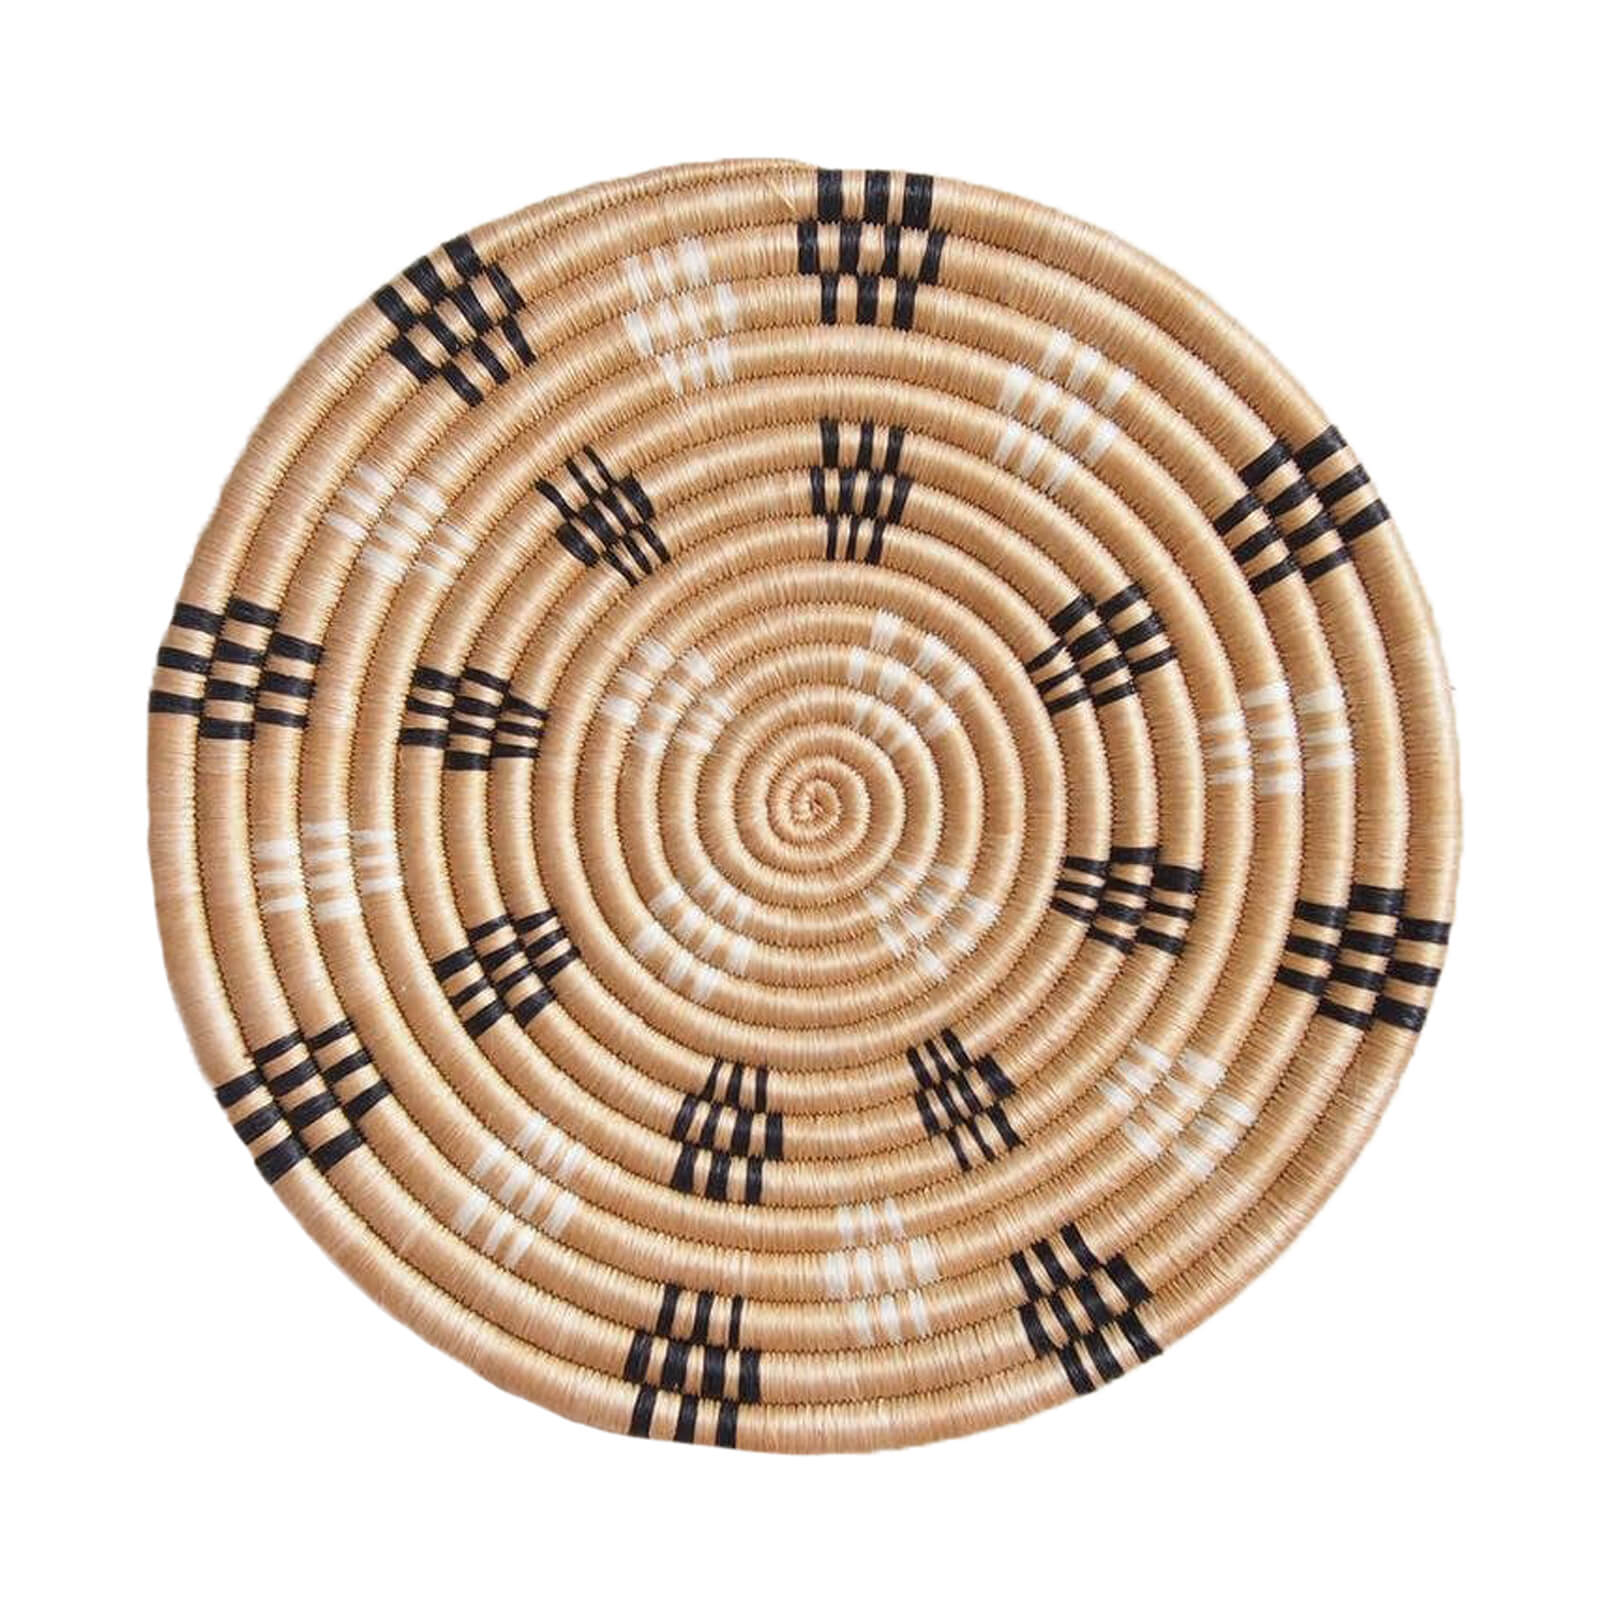 Hand Woven Rugombo Trivet - Tan, Black and White